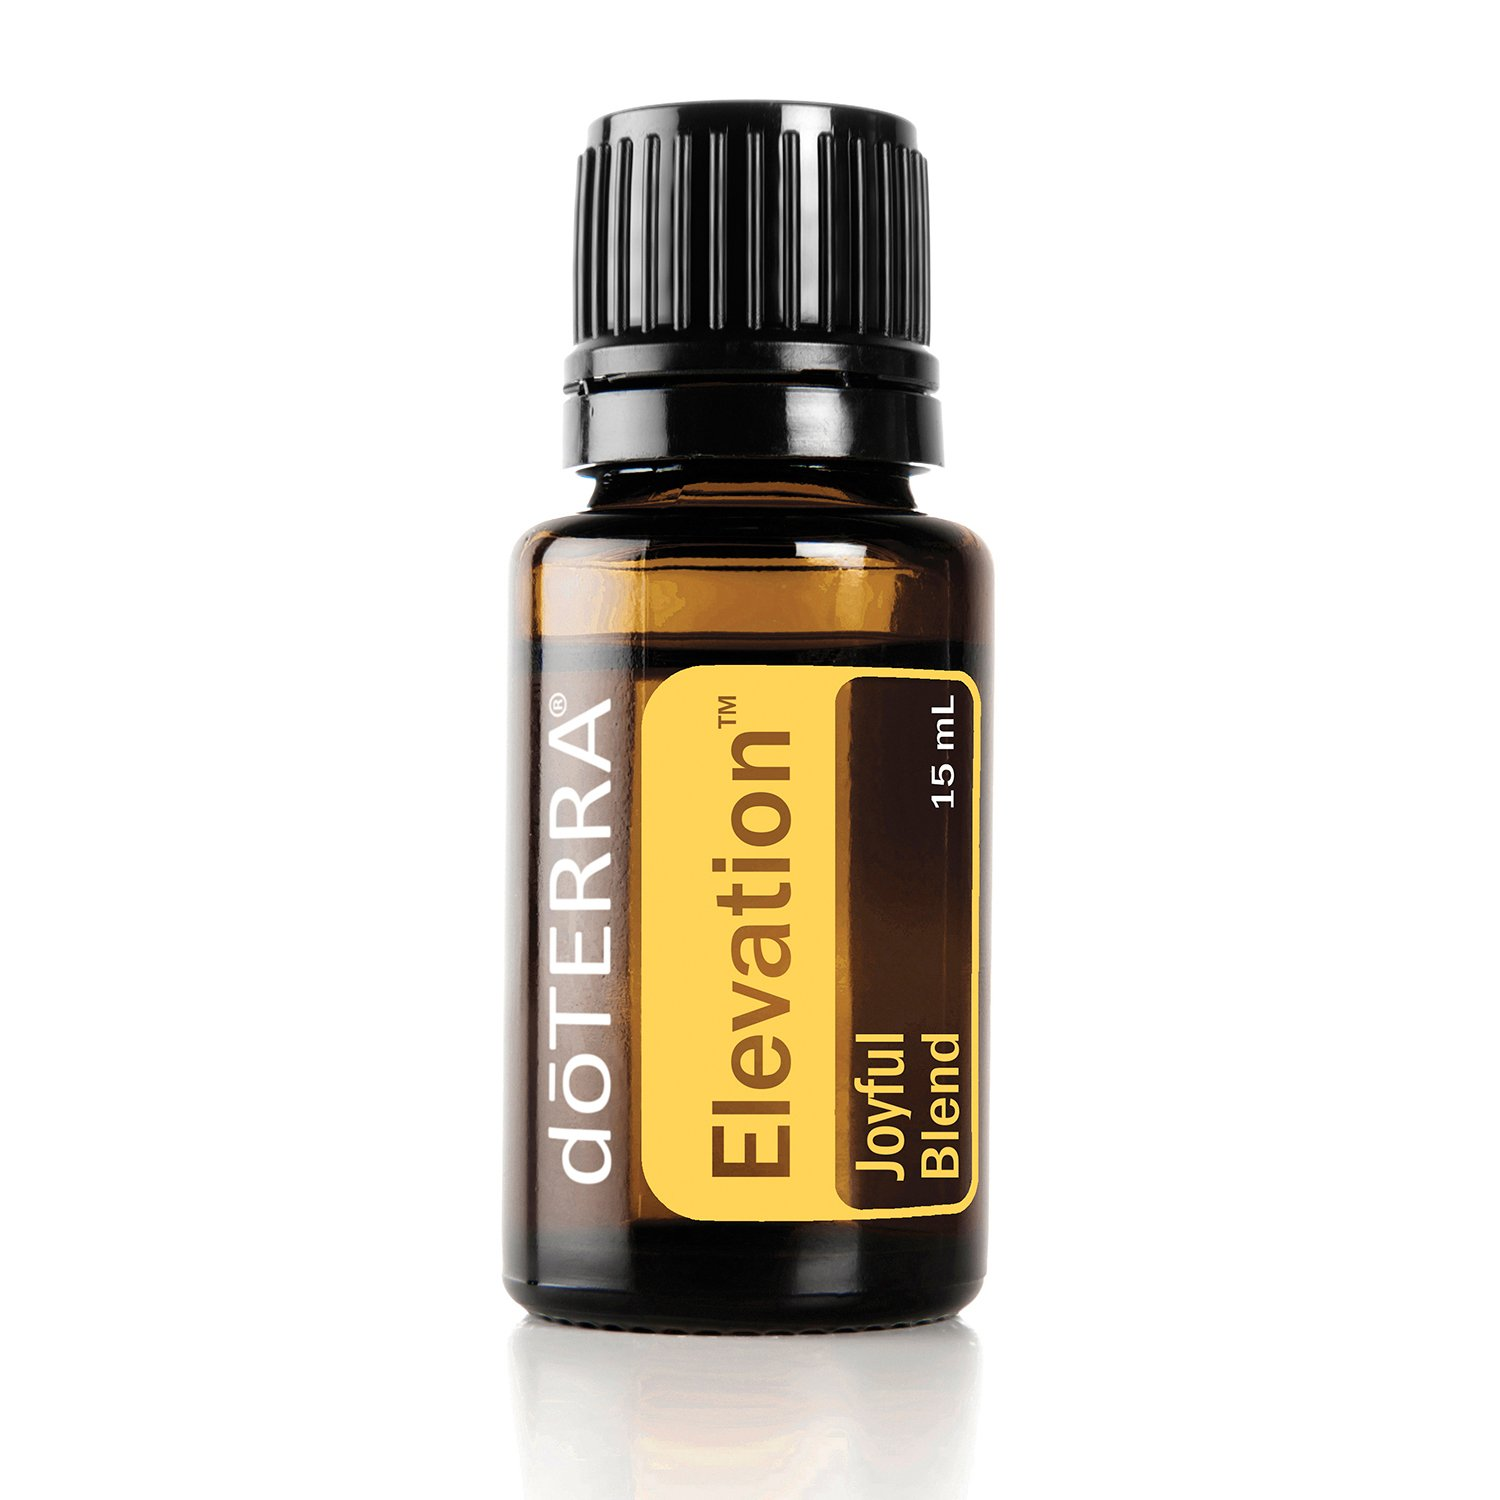 doTERRA - Elevation Essential Oil Joyful Blend - Energizing and Refreshing Aroma Promotes Elevated Mood and Increases Vitality; For Diffusion or Topical Use - 15mL